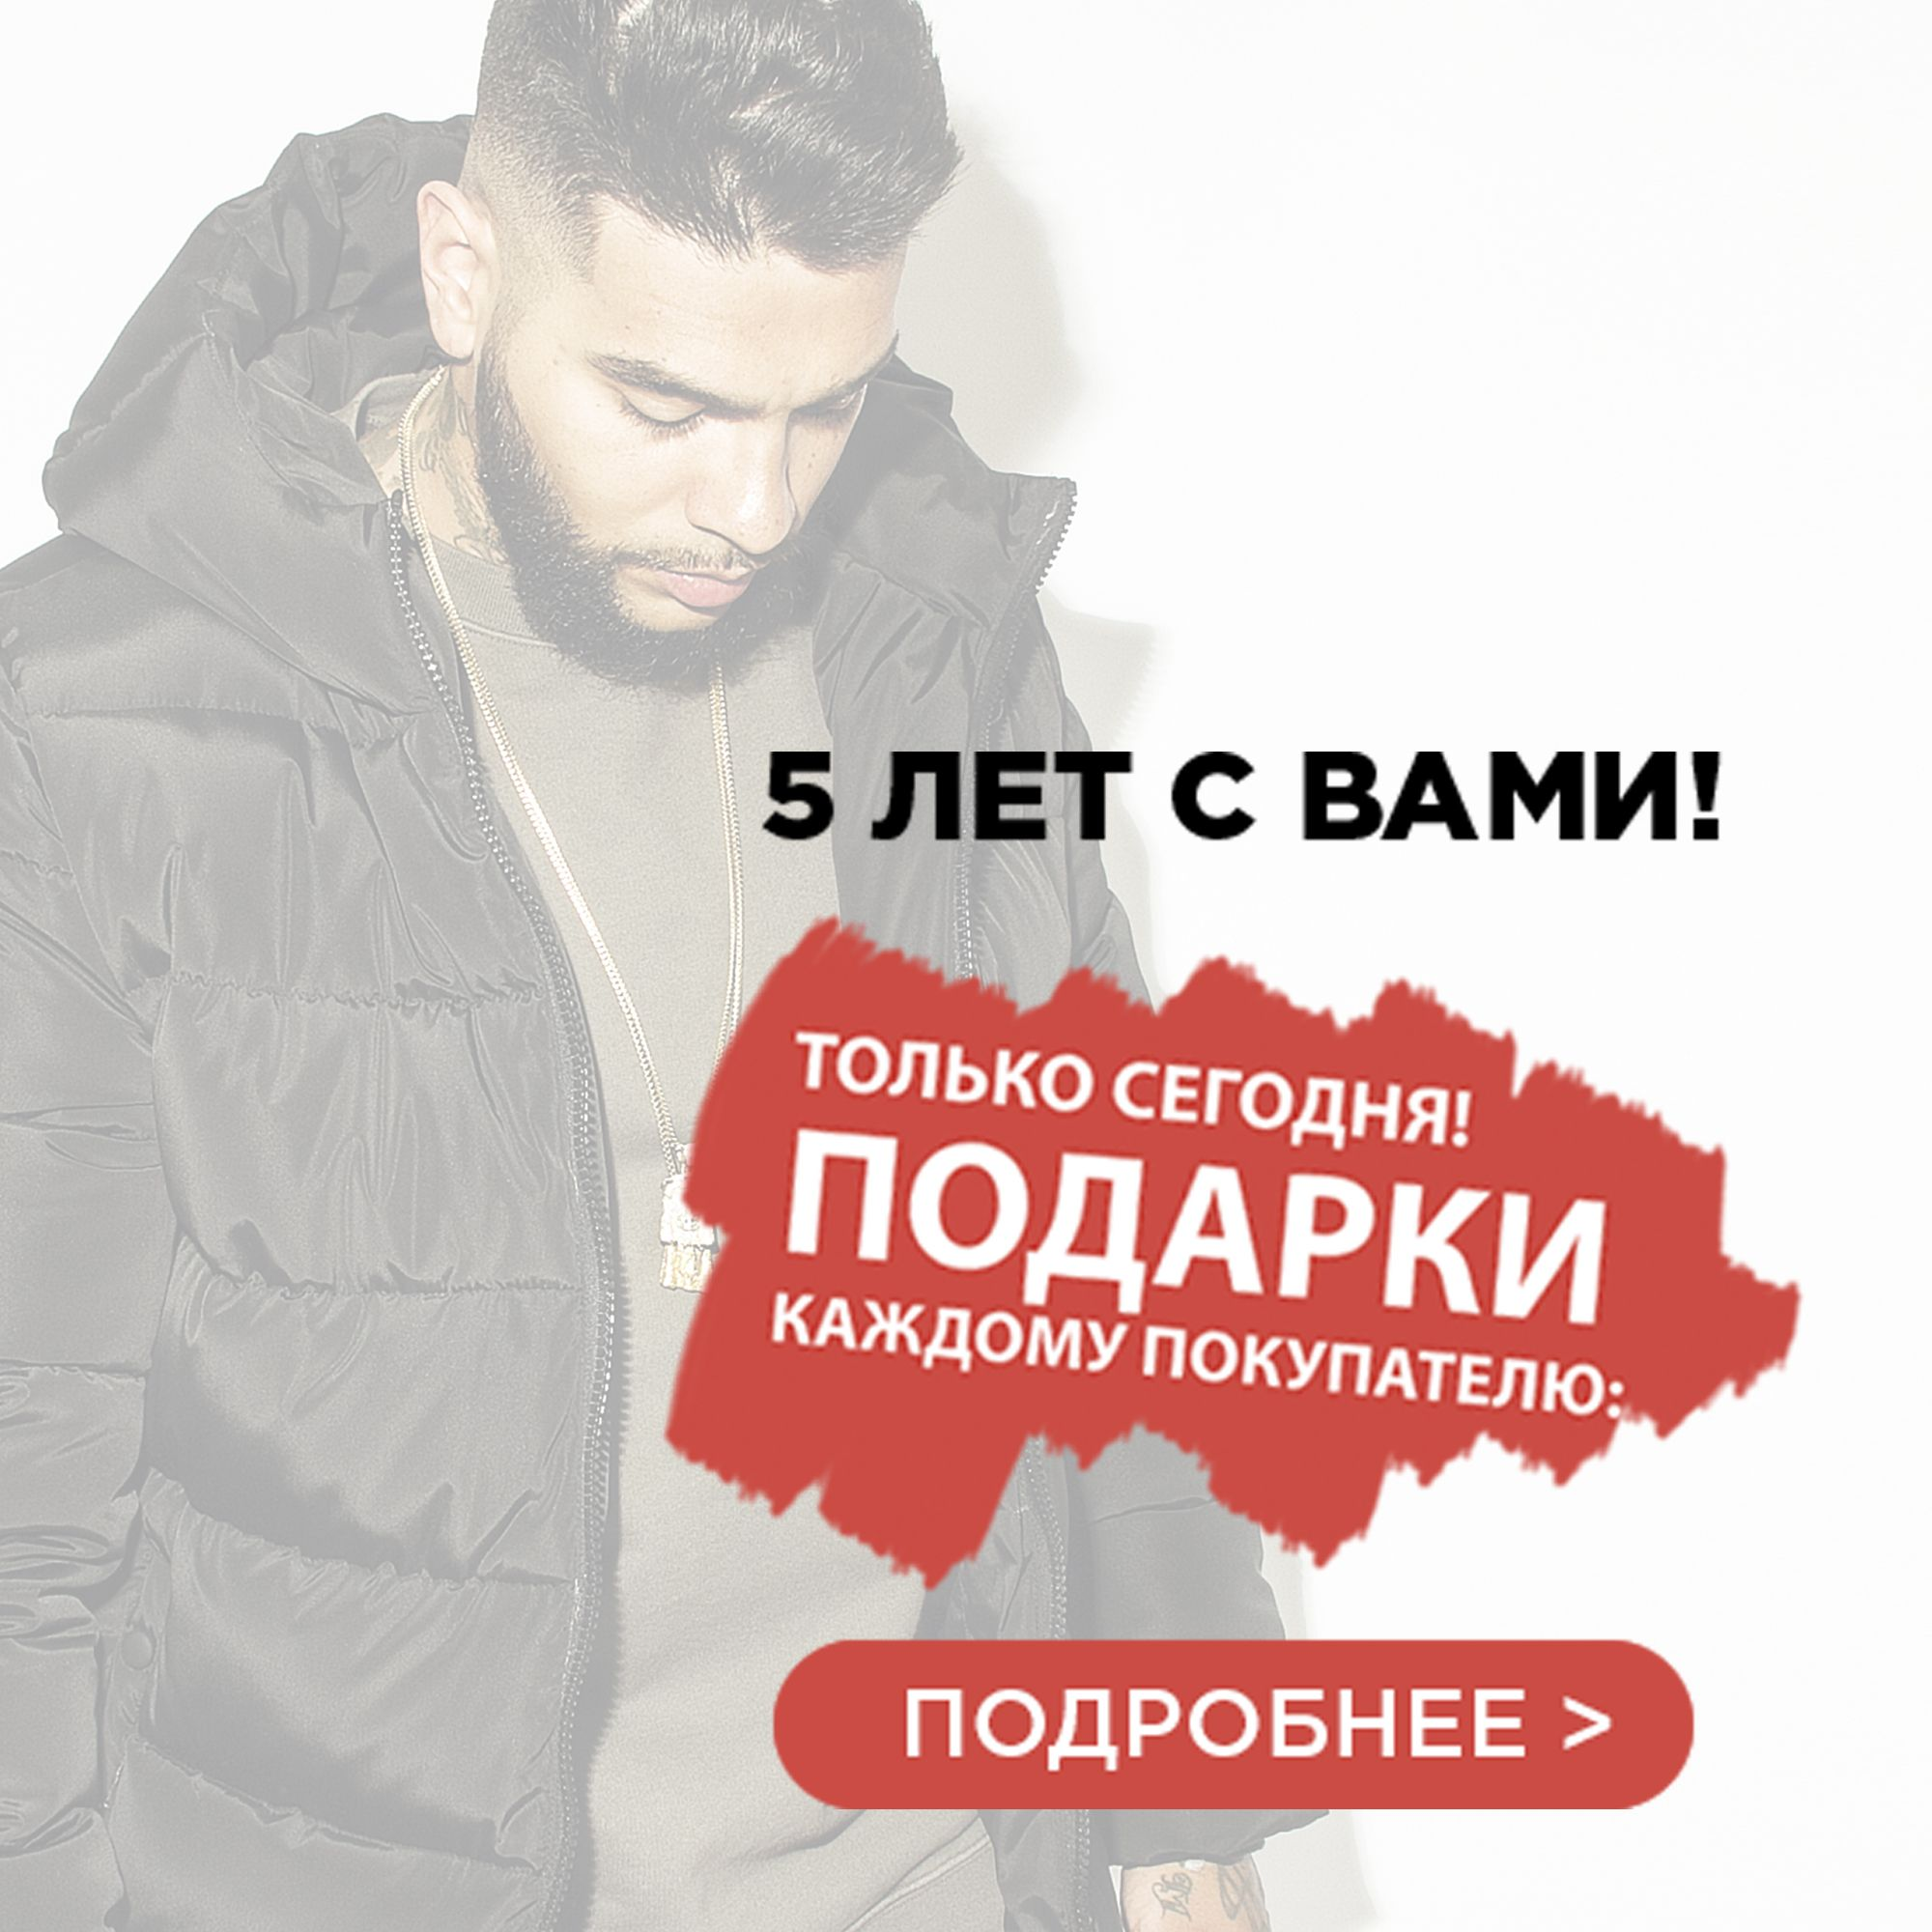 17 декабря - BLACK STAR WEAR 5 ЛЕТ!